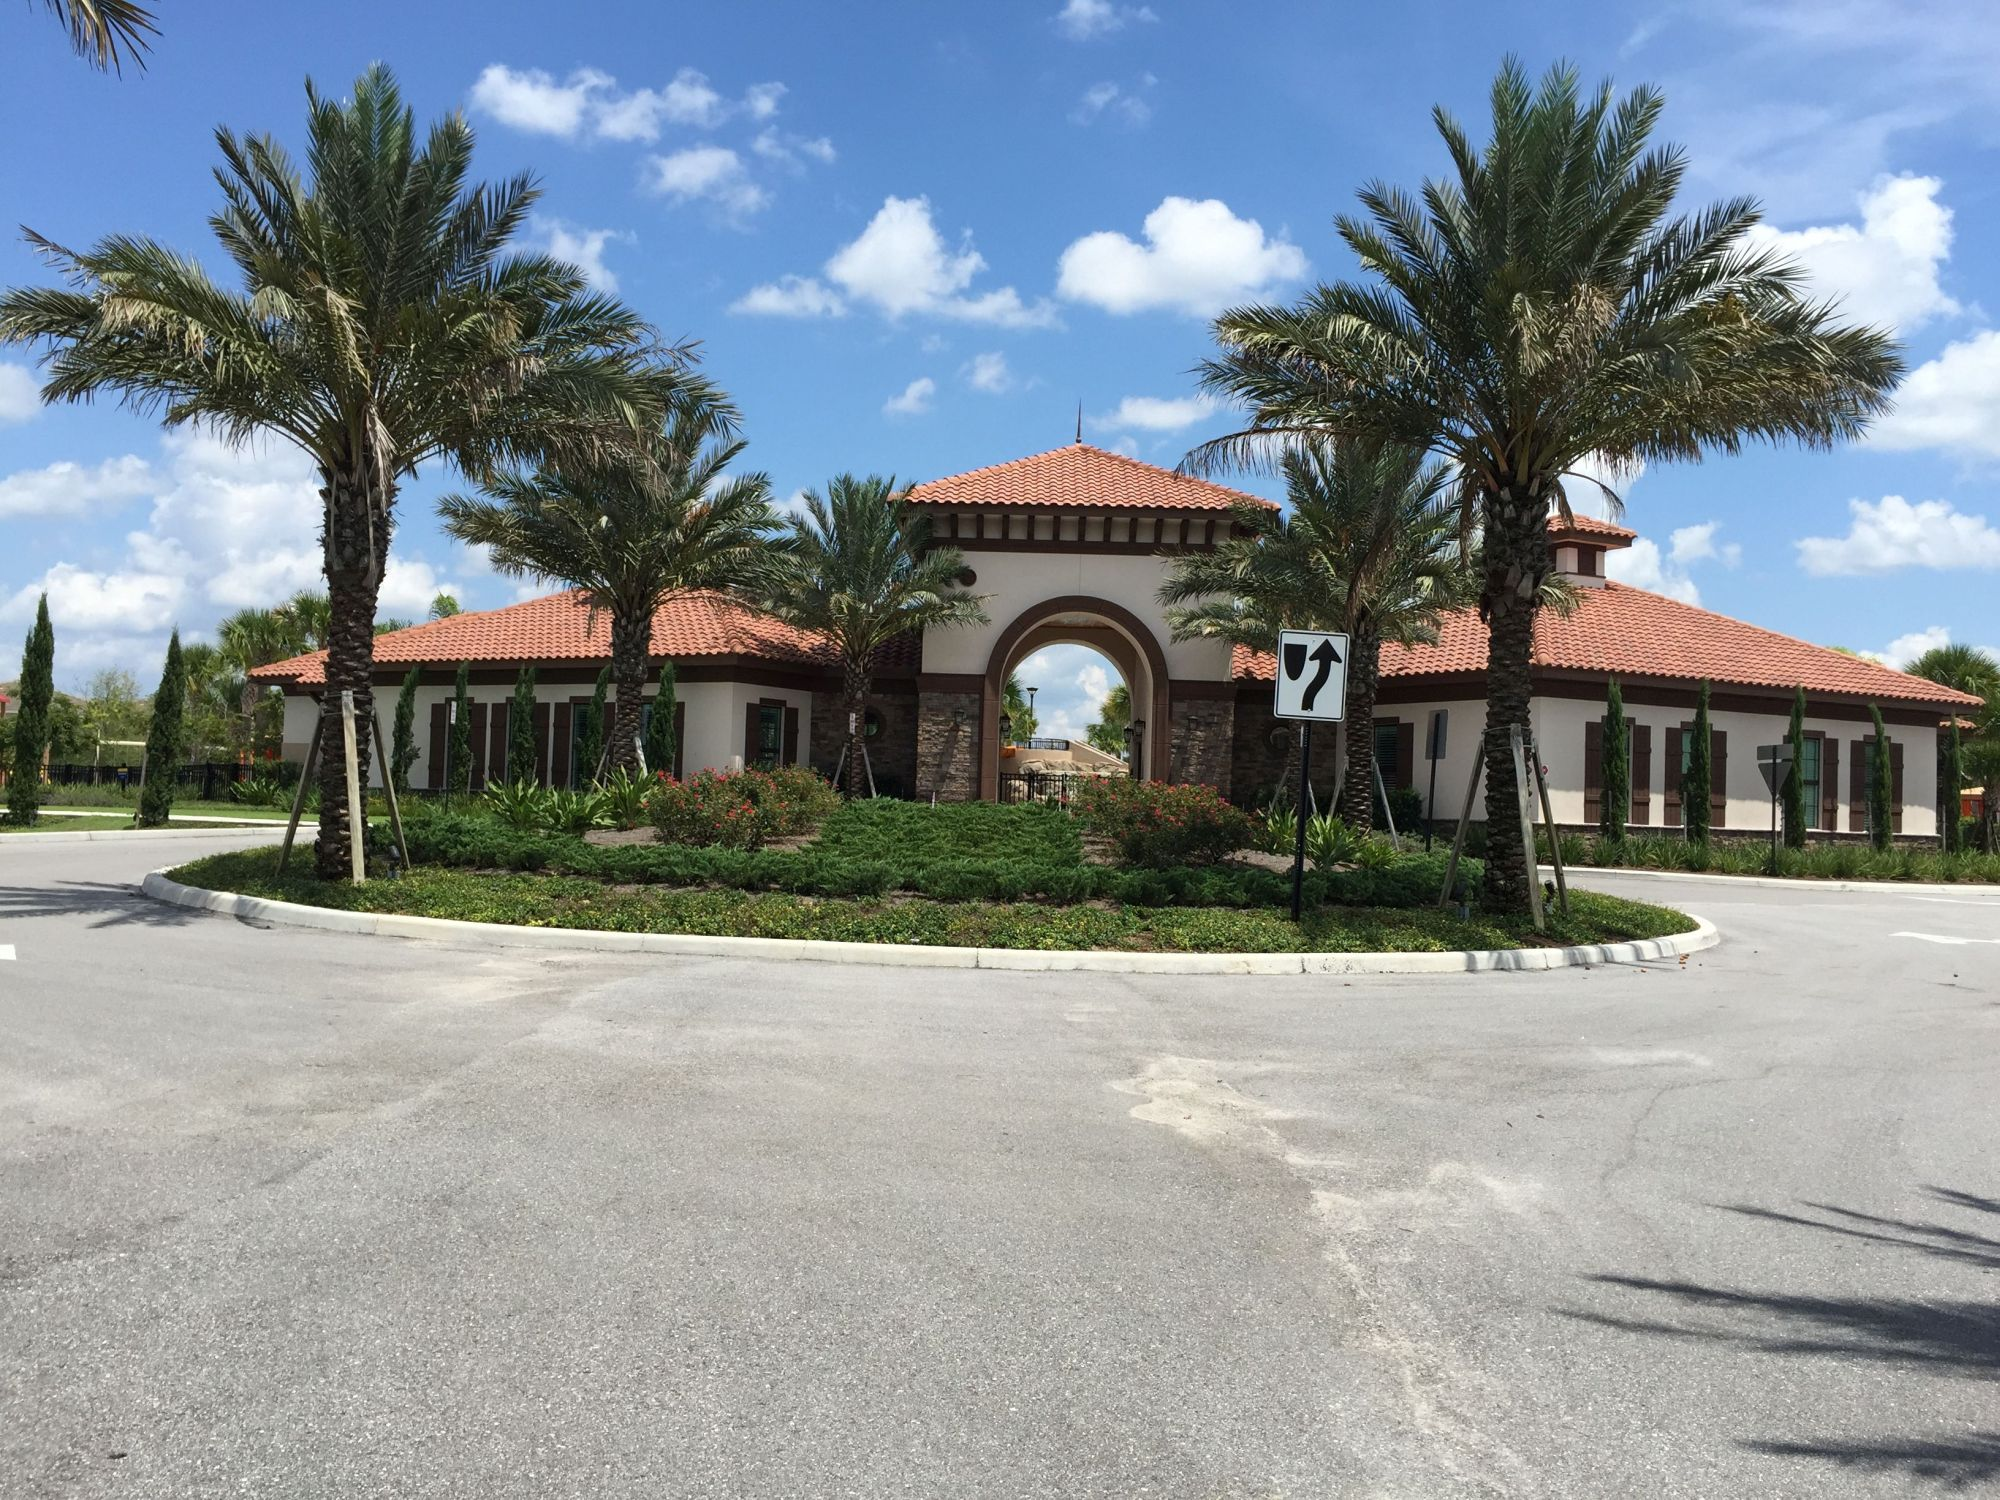 Front View of Solterra Resort